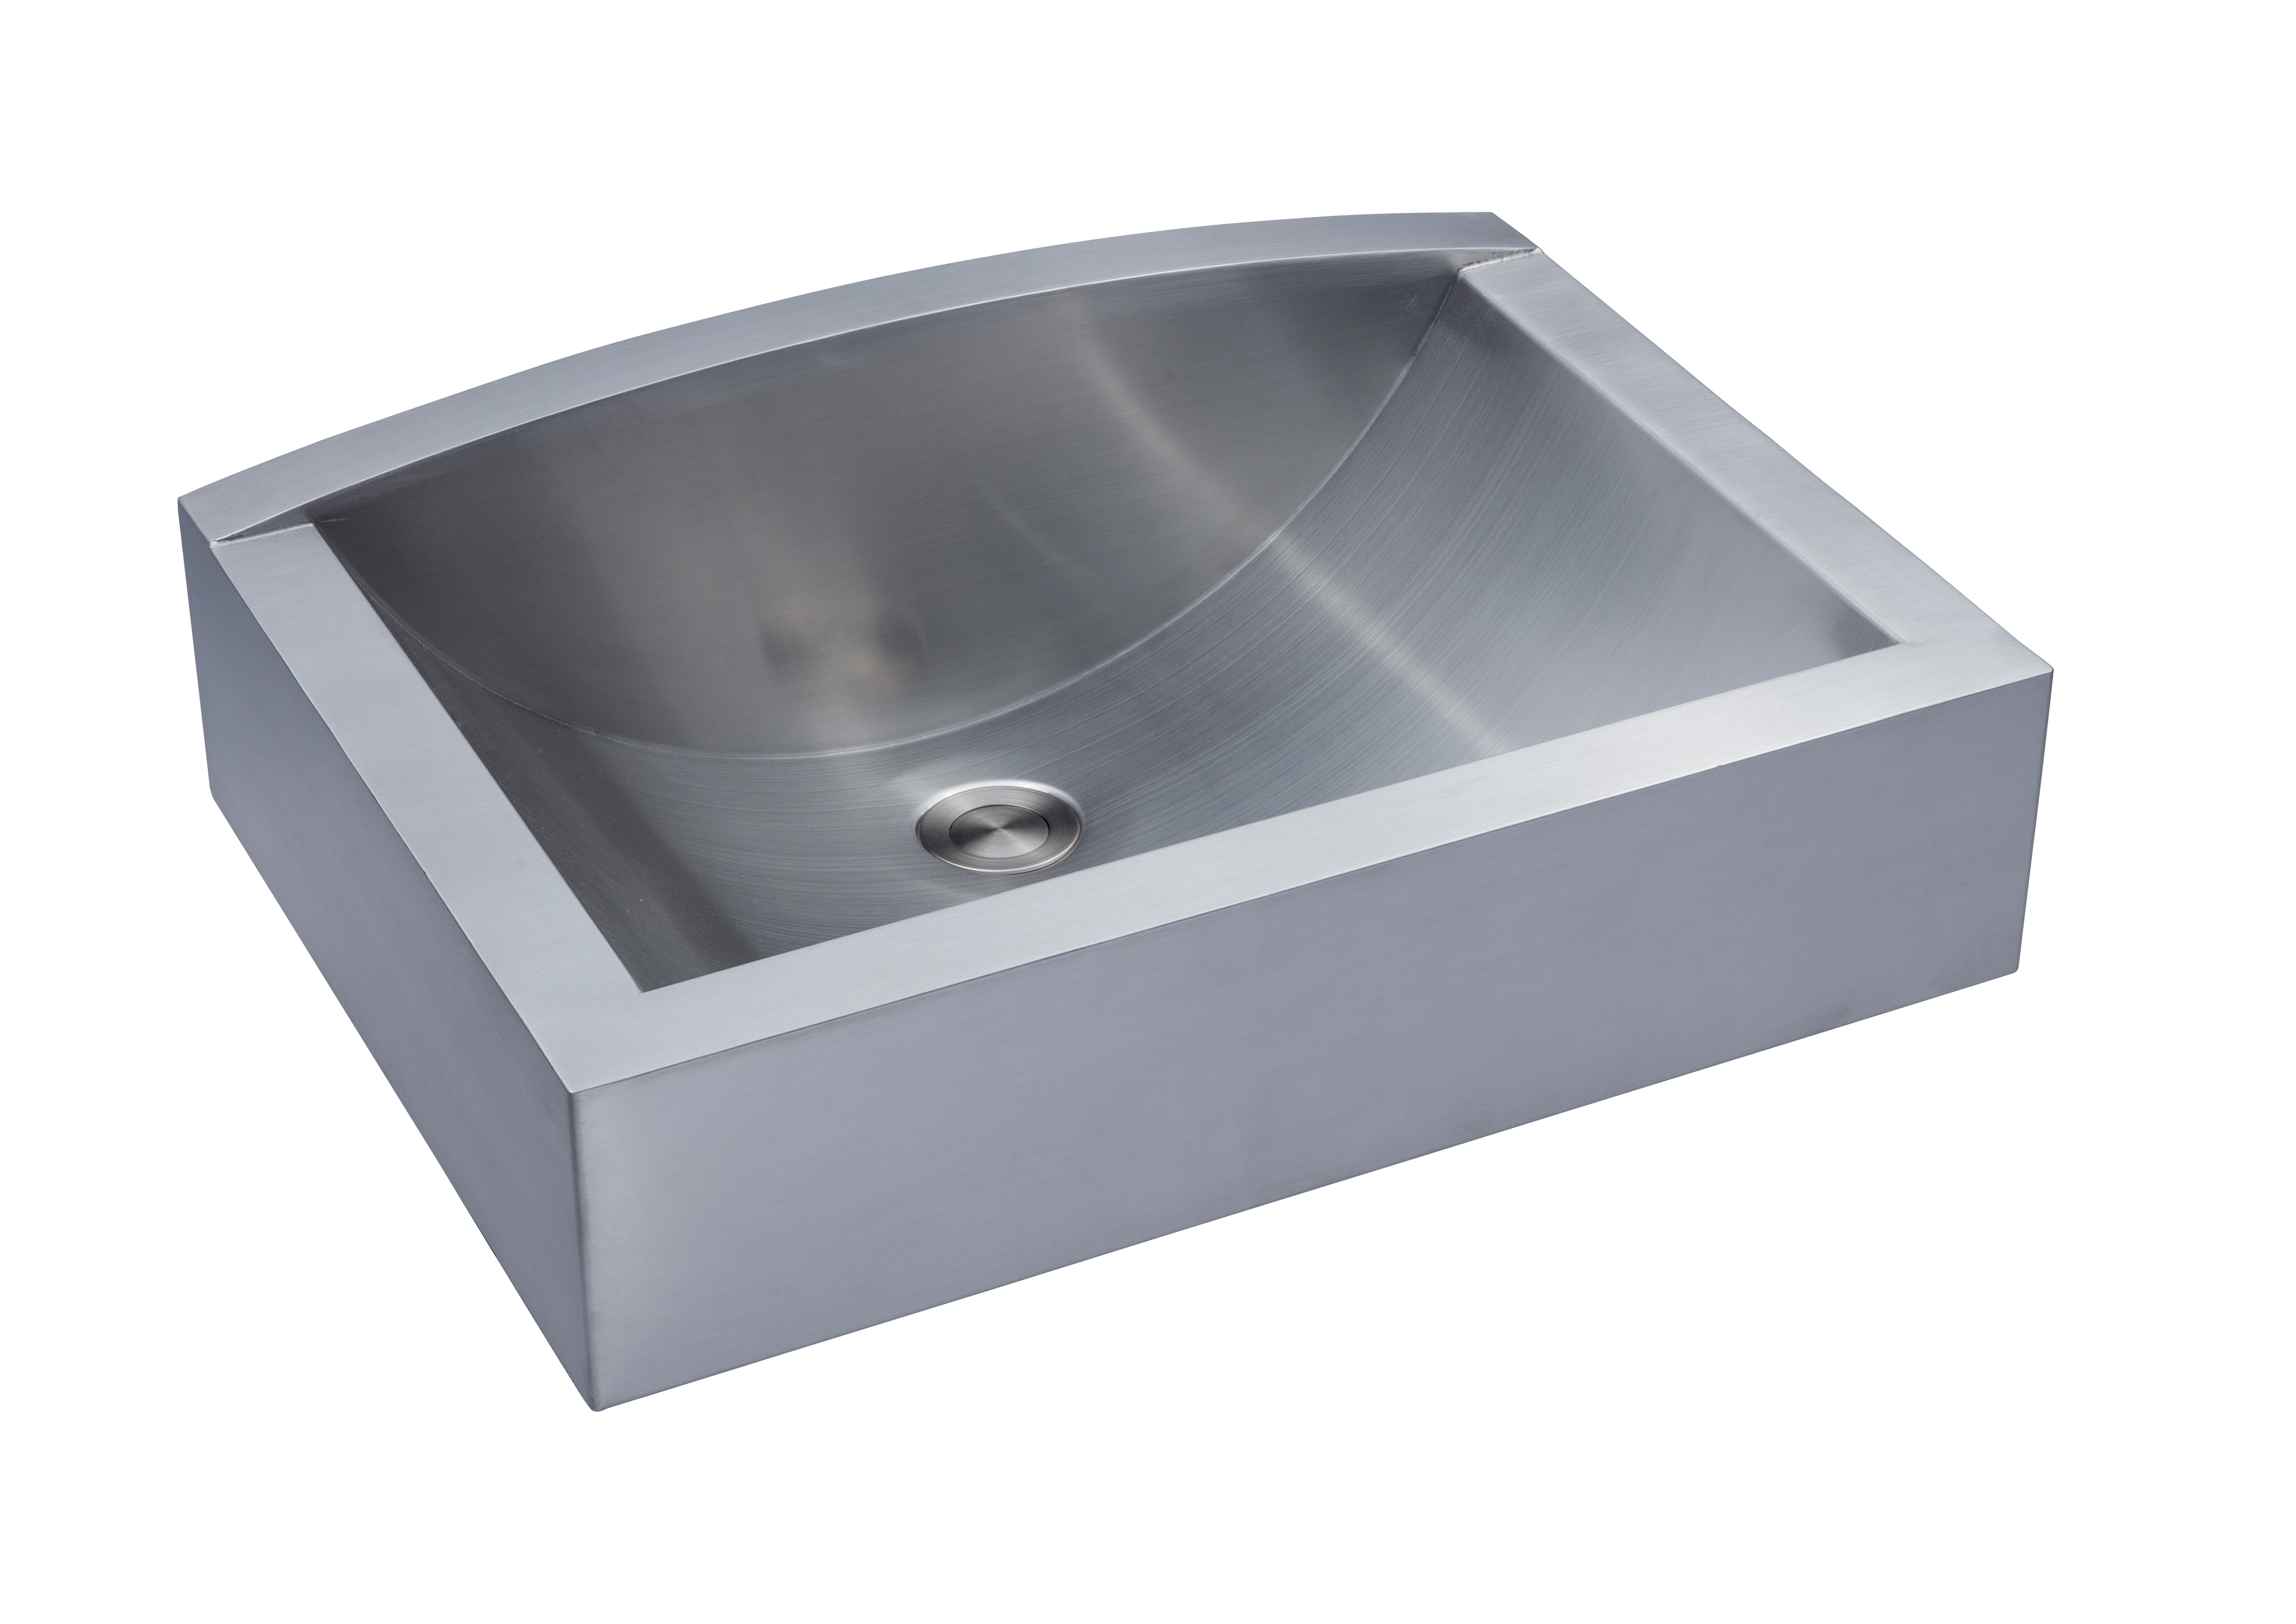 vessel ss sink as367 21   x 15   x 7 63   18g single bowl vessel legend stainless      rh   amerisink com